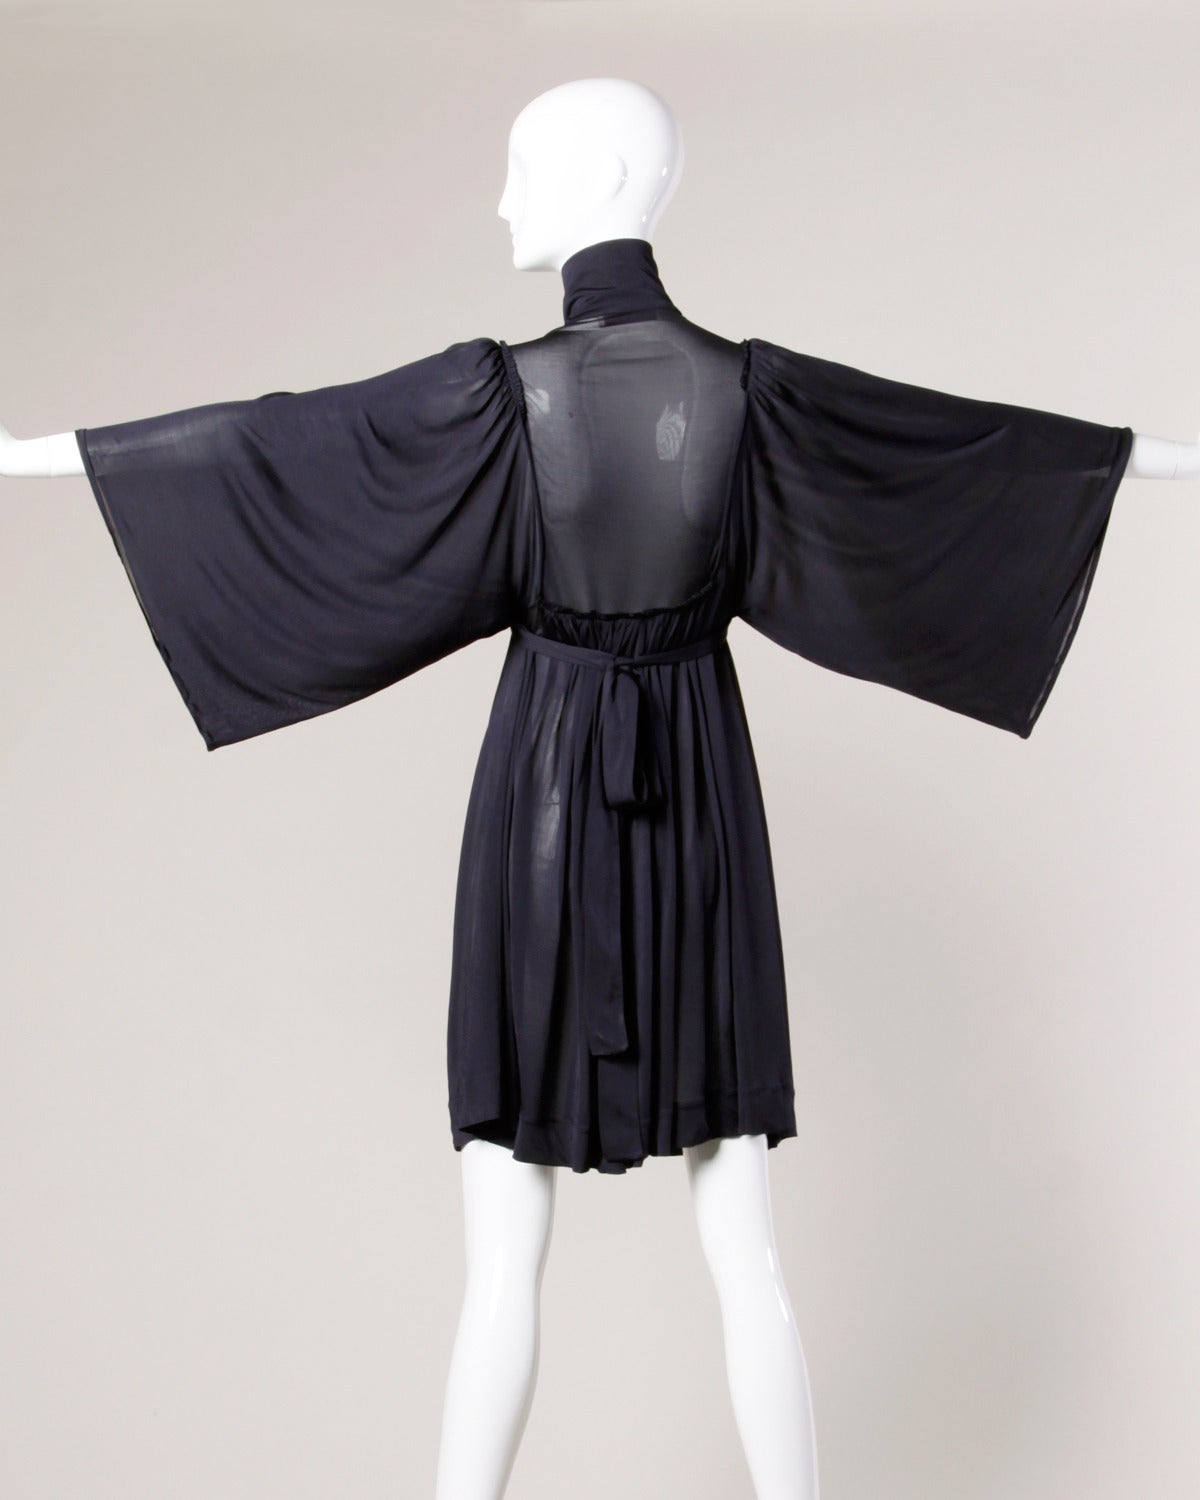 Stella McCartney Recent Sheer Navy Blue Dress with Angel Batwing Sleeves 3